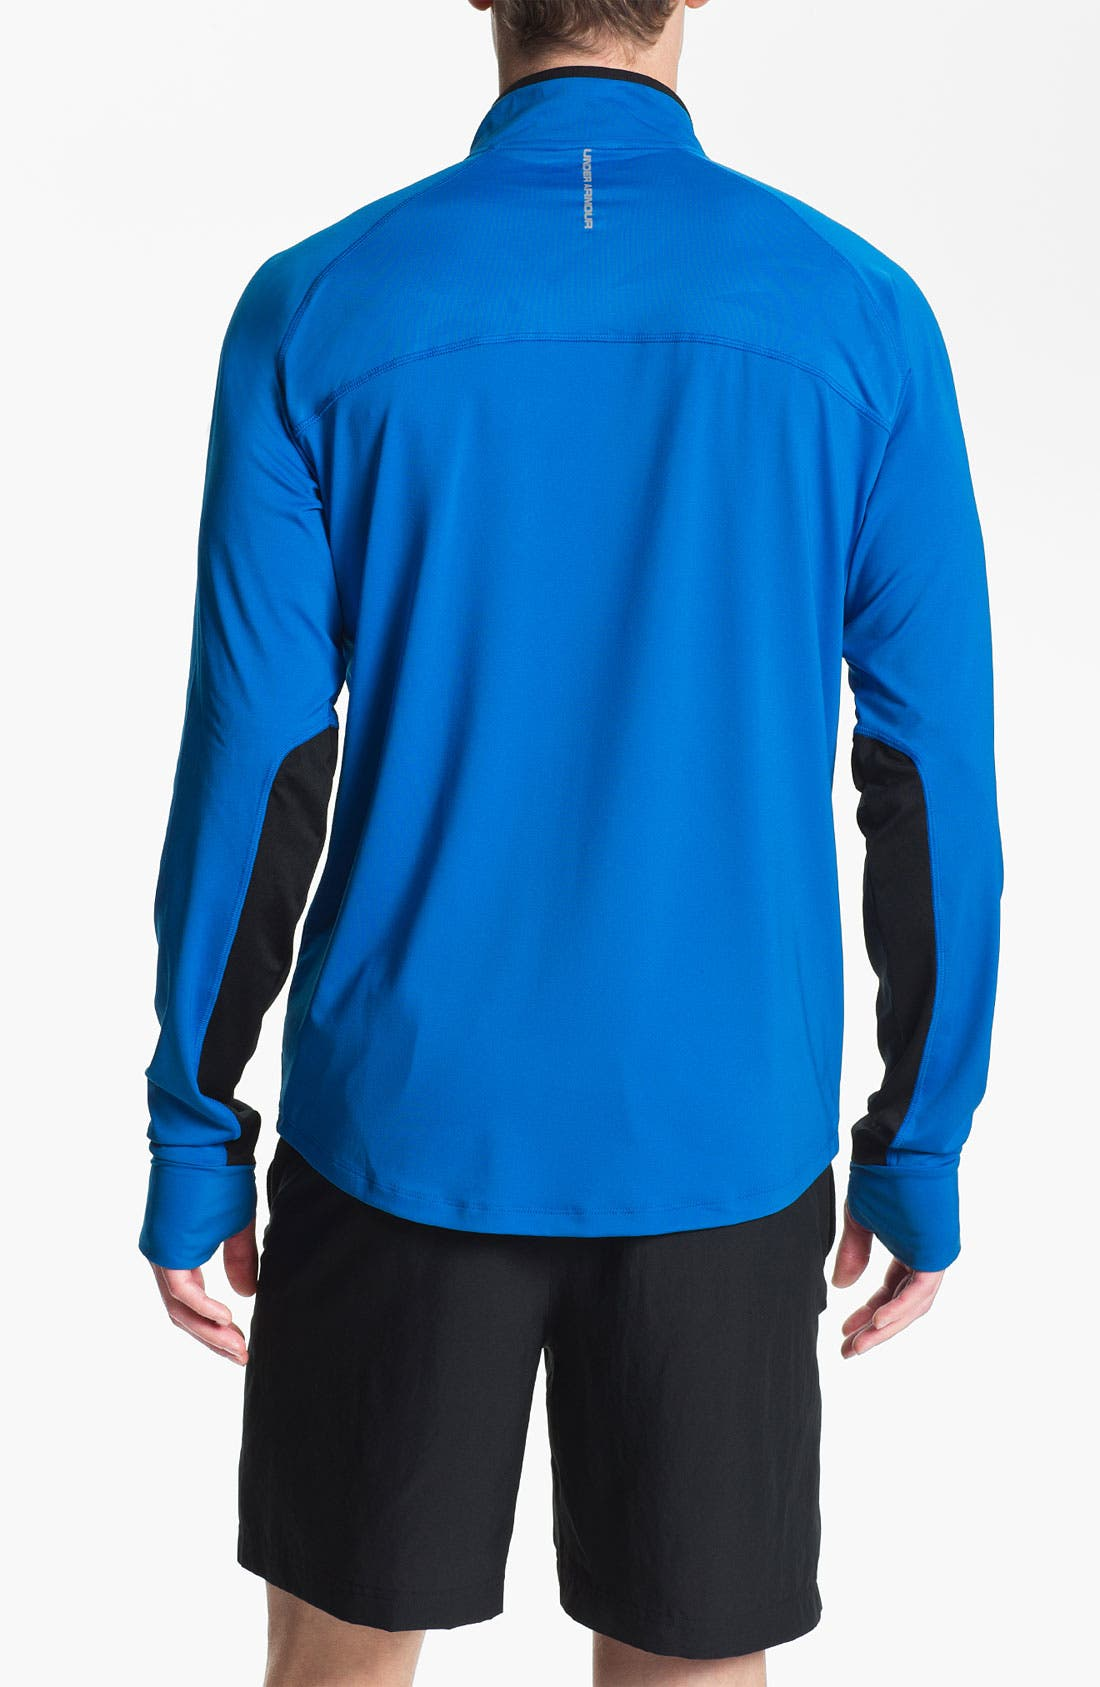 Alternate Image 2  - Under Armour 'Imminent Run' Quarter Zip Pullover